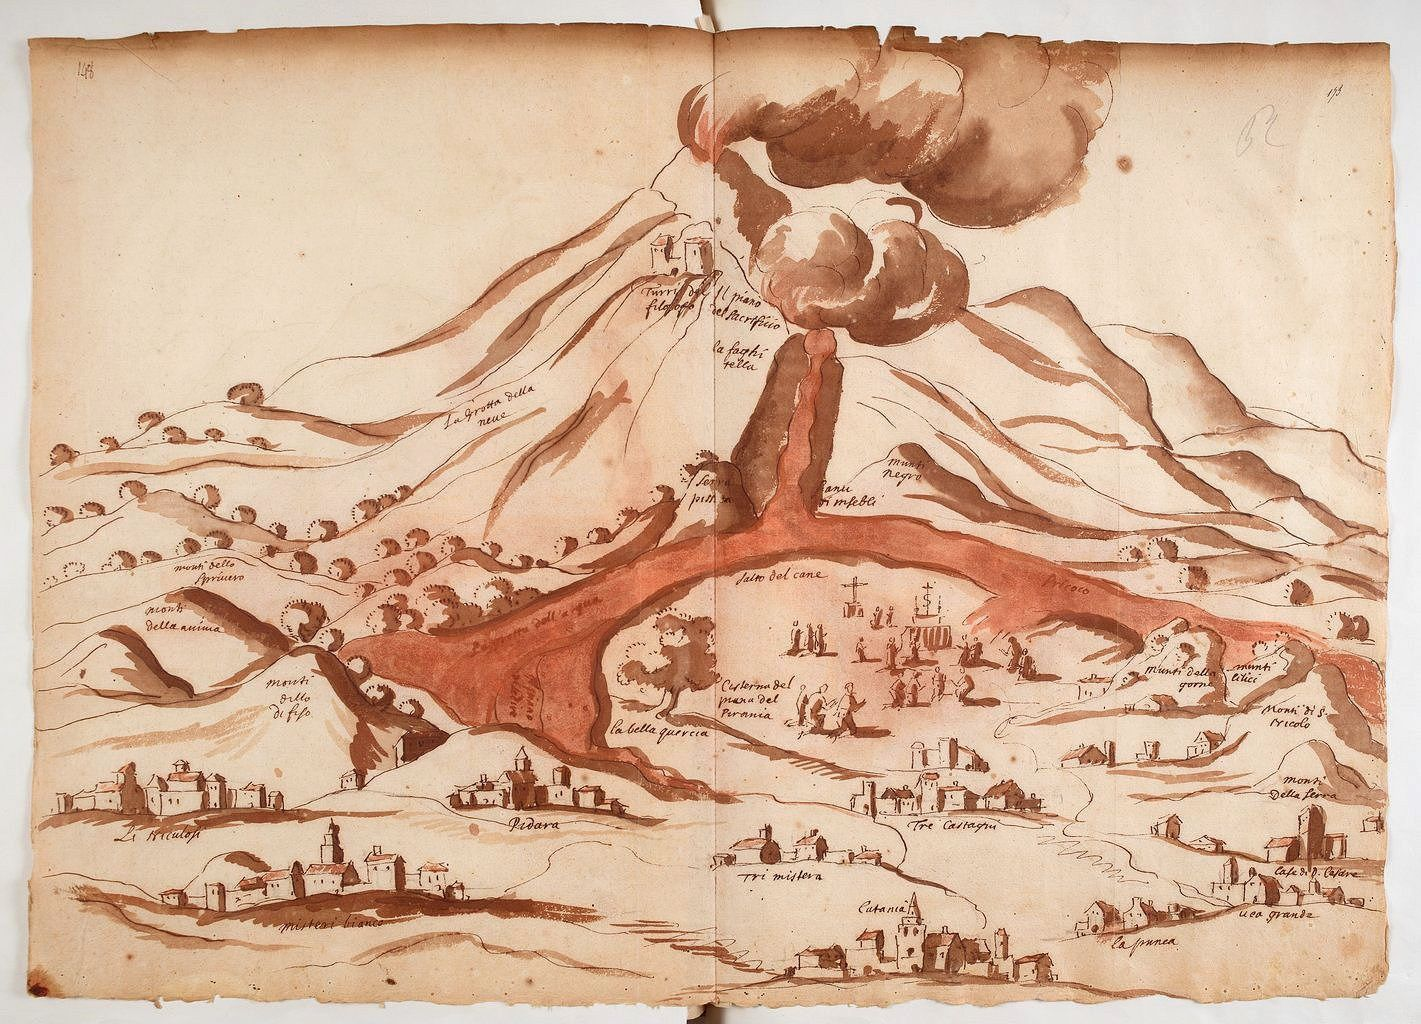 Monochromatic map in ink and watercolor sepia A. Leal preserved at the National Library of France. - 47.3 x 33.2 cm - illustrating the eruption of Etna during his excursion on December 8, 1635, and attached to his correspondence. - a click to enlarge